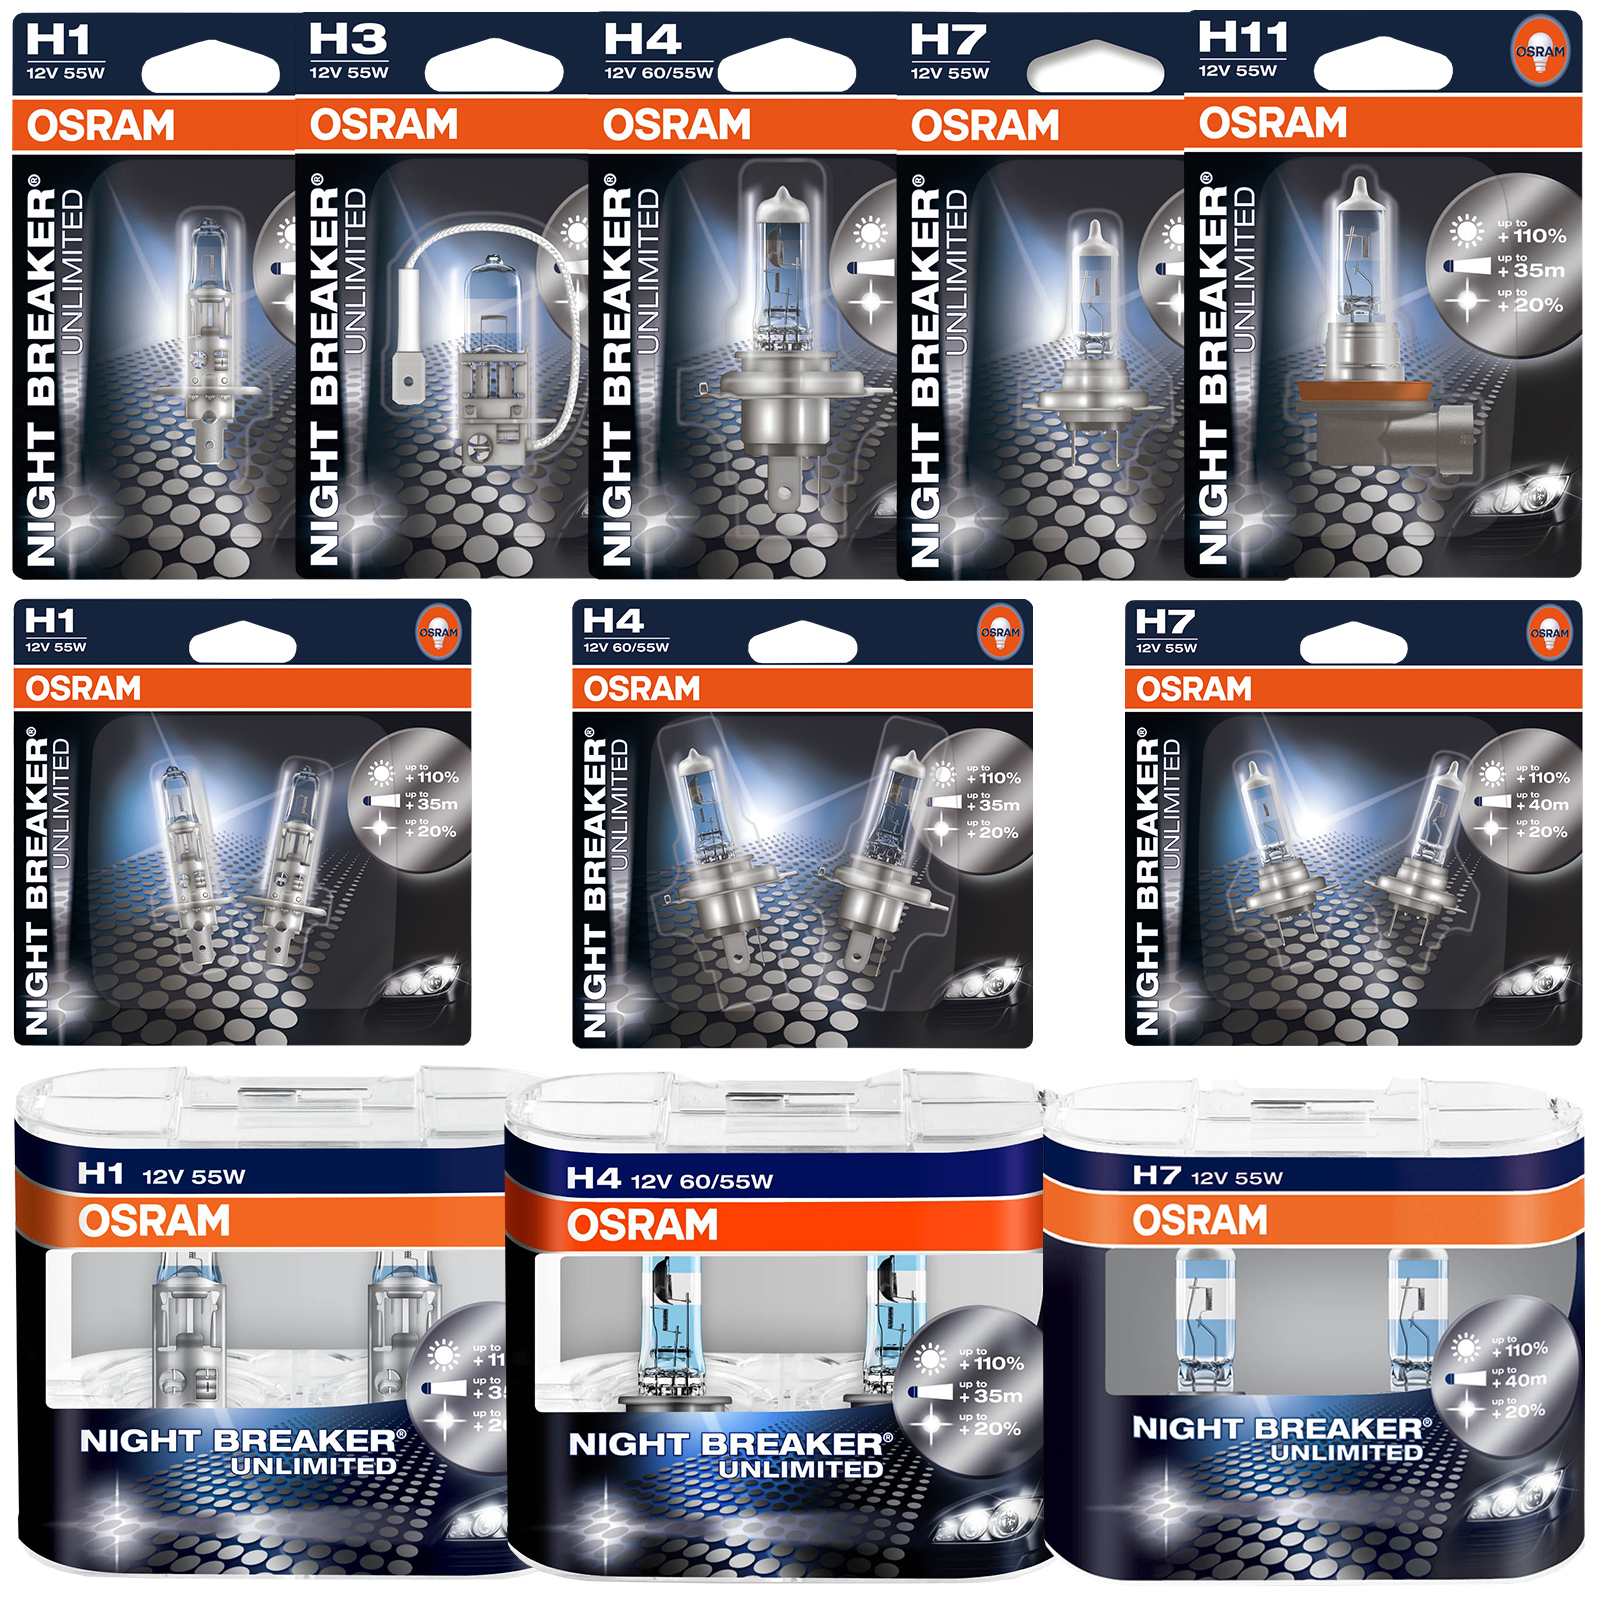 osram night breaker unlimited car bulbs h1 h3 h4 h7 h11 hb3 hb4 fittings here picclick uk. Black Bedroom Furniture Sets. Home Design Ideas